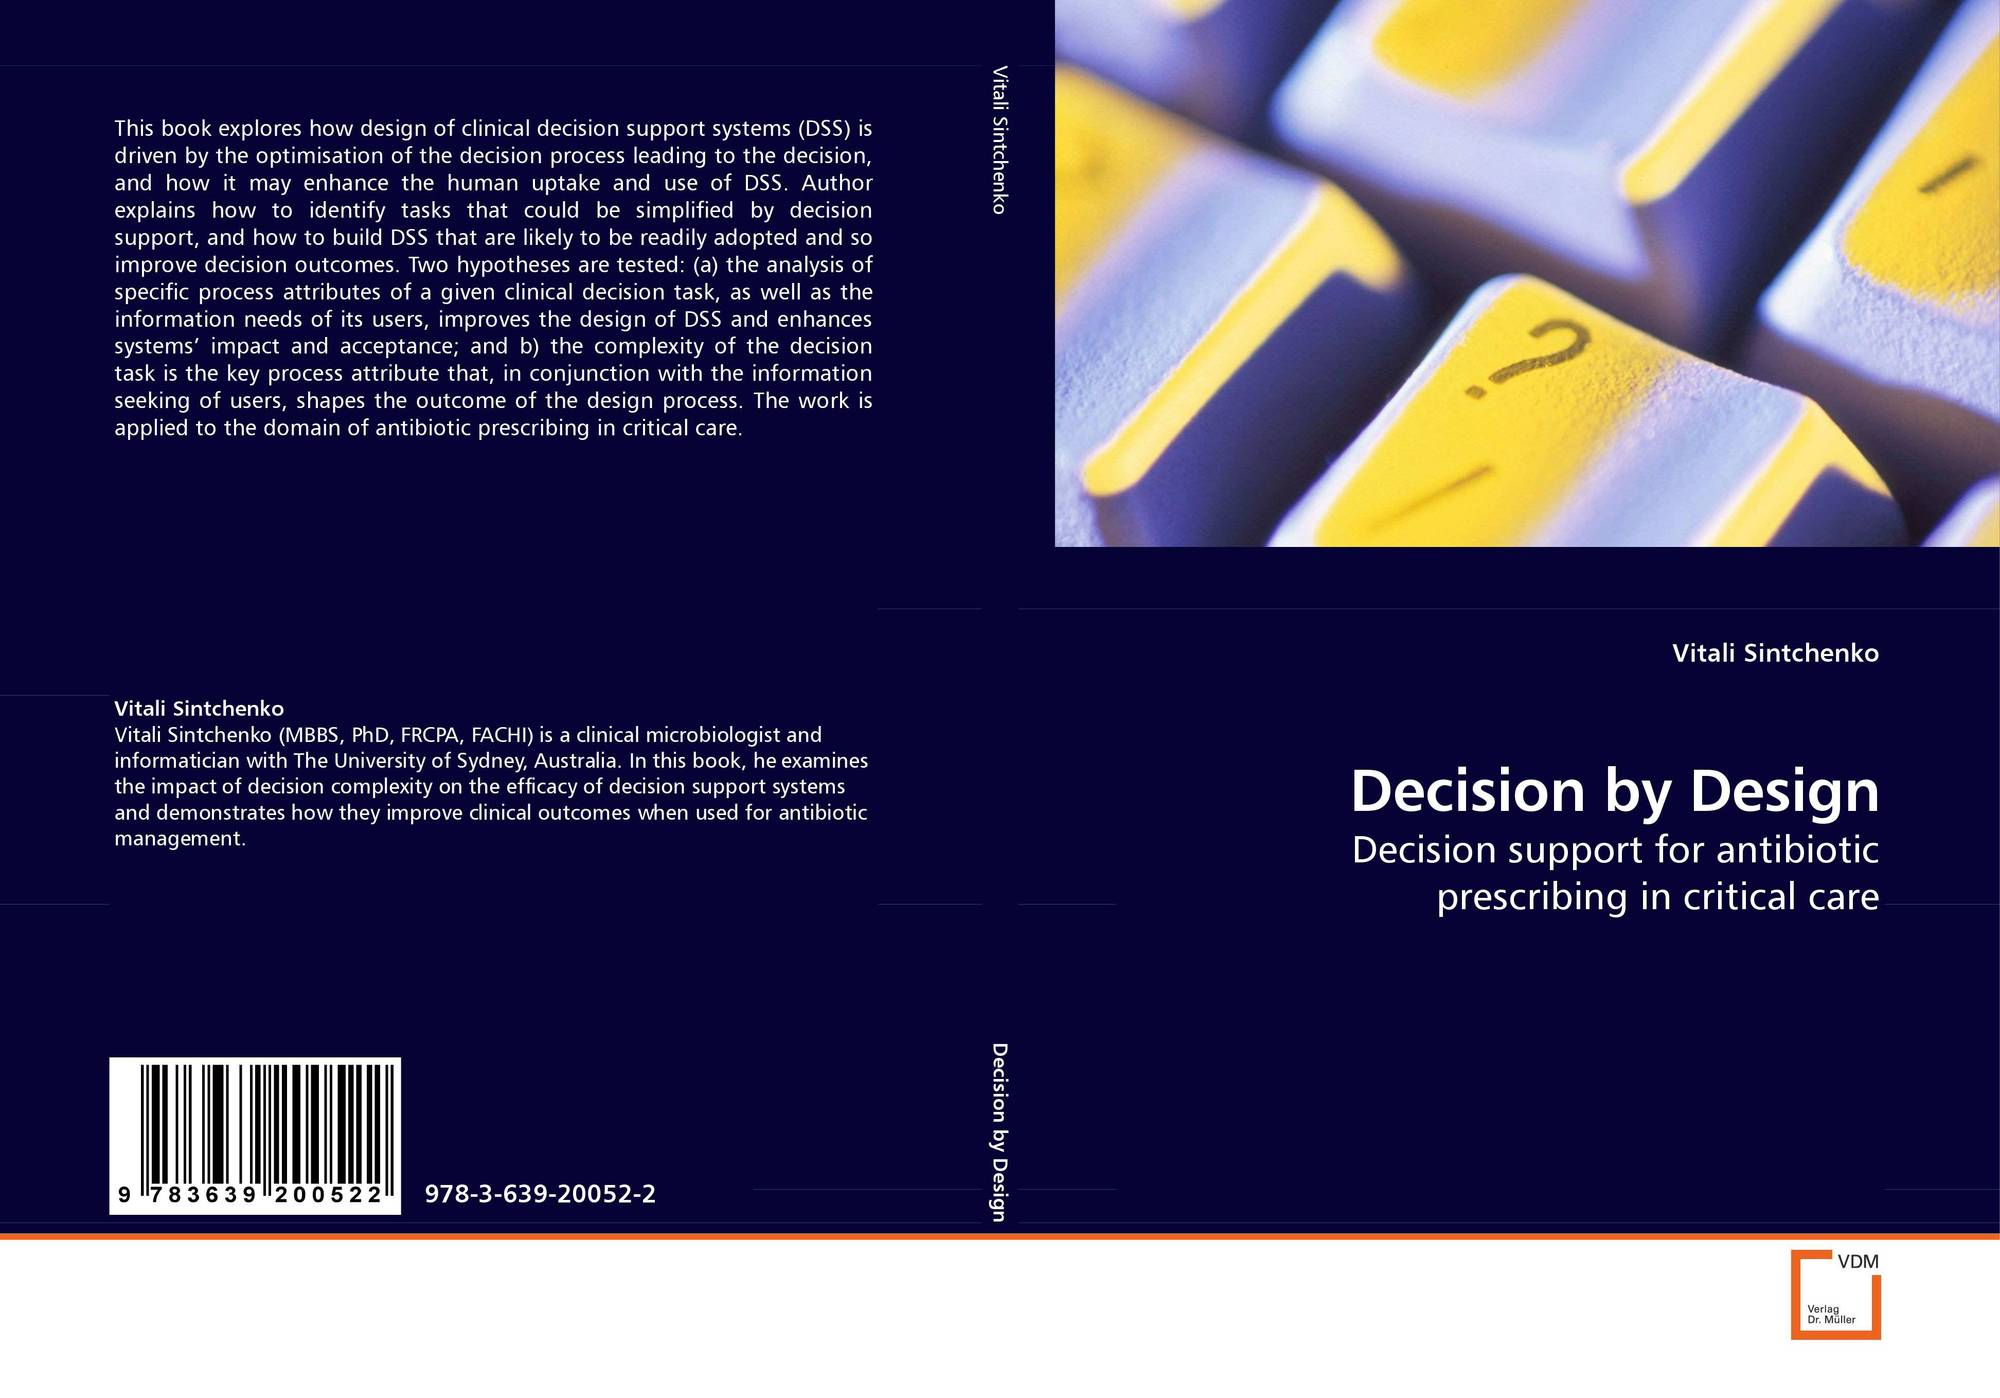 the issue of the dss adoption process and its complexity Preference in the decision making process [7] a decision support system (dss) and the complexity in the process of selecting issue in the adoption.